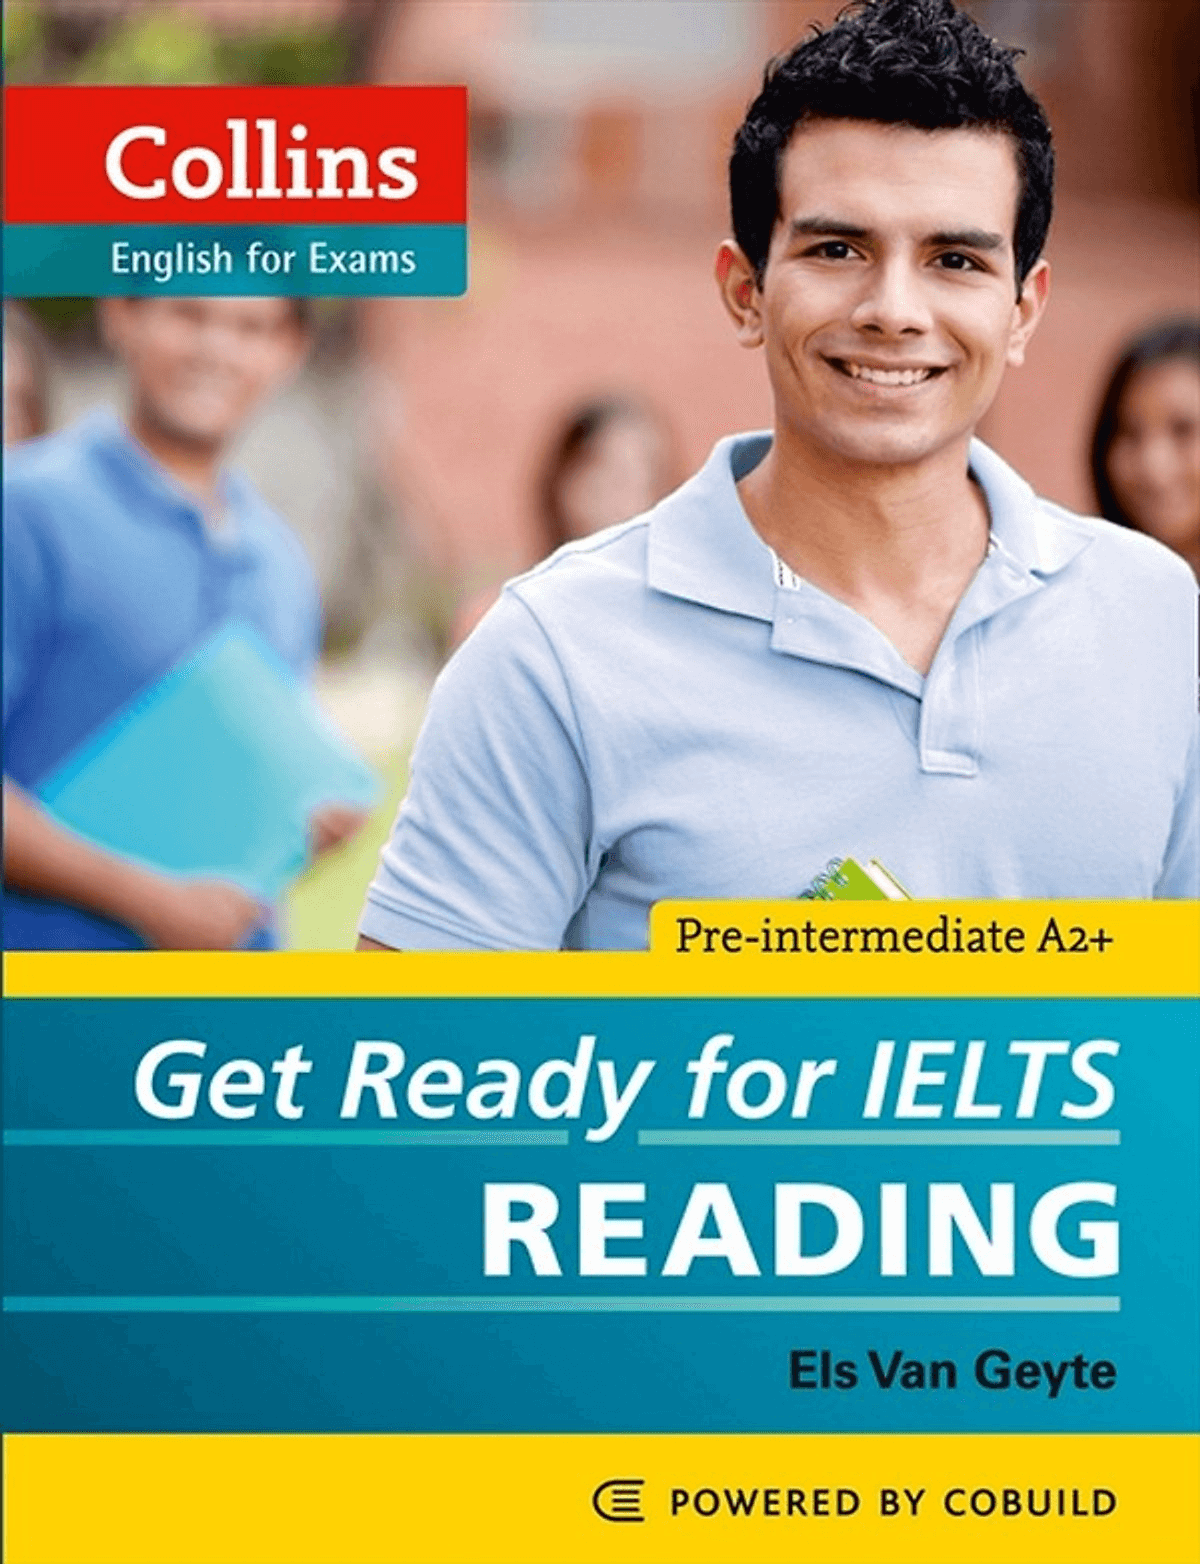 Get ready for IELTS reading pdf